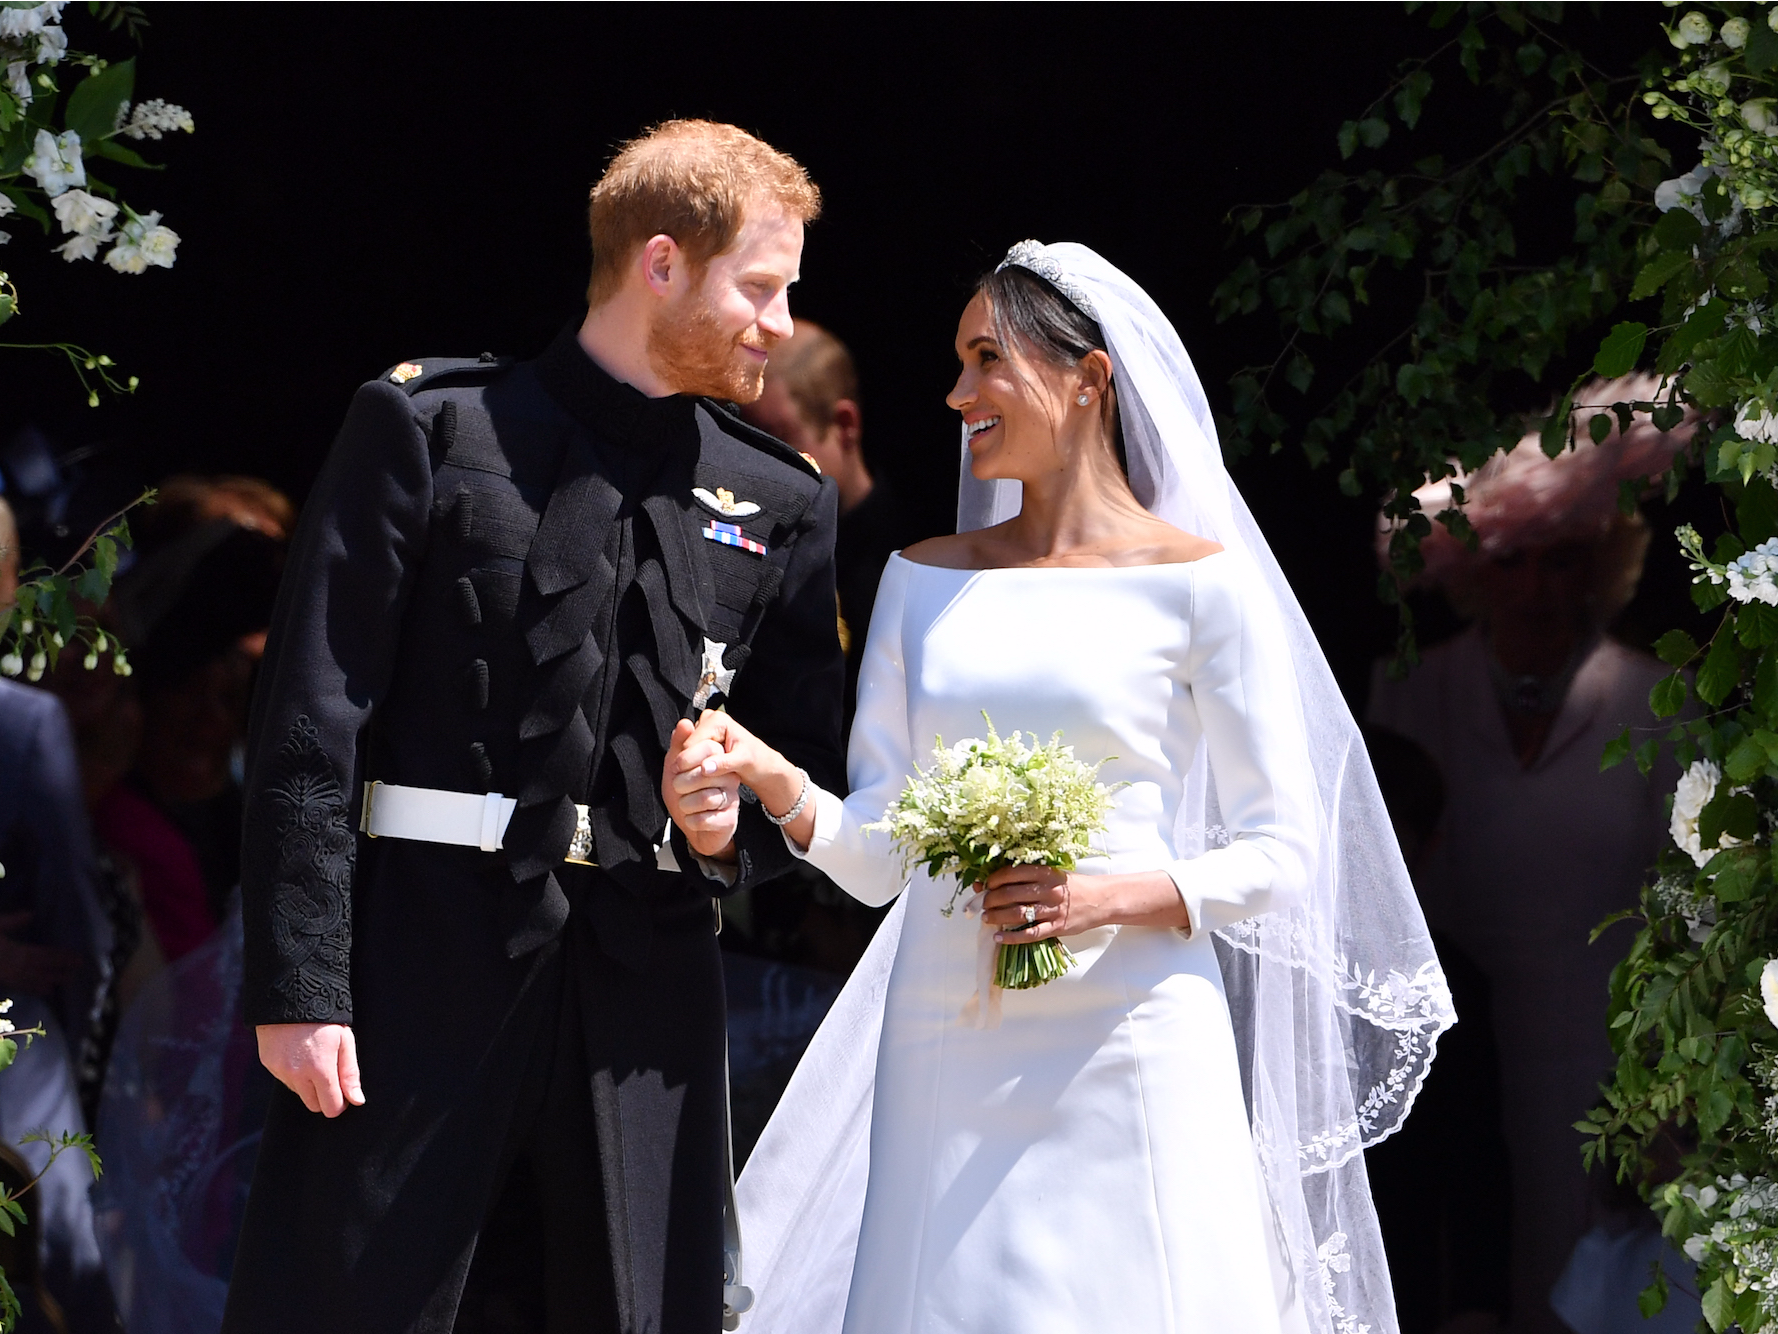 Under pressure from my grandmother: Prince Harry still signed a marriage contract with Megan Markle